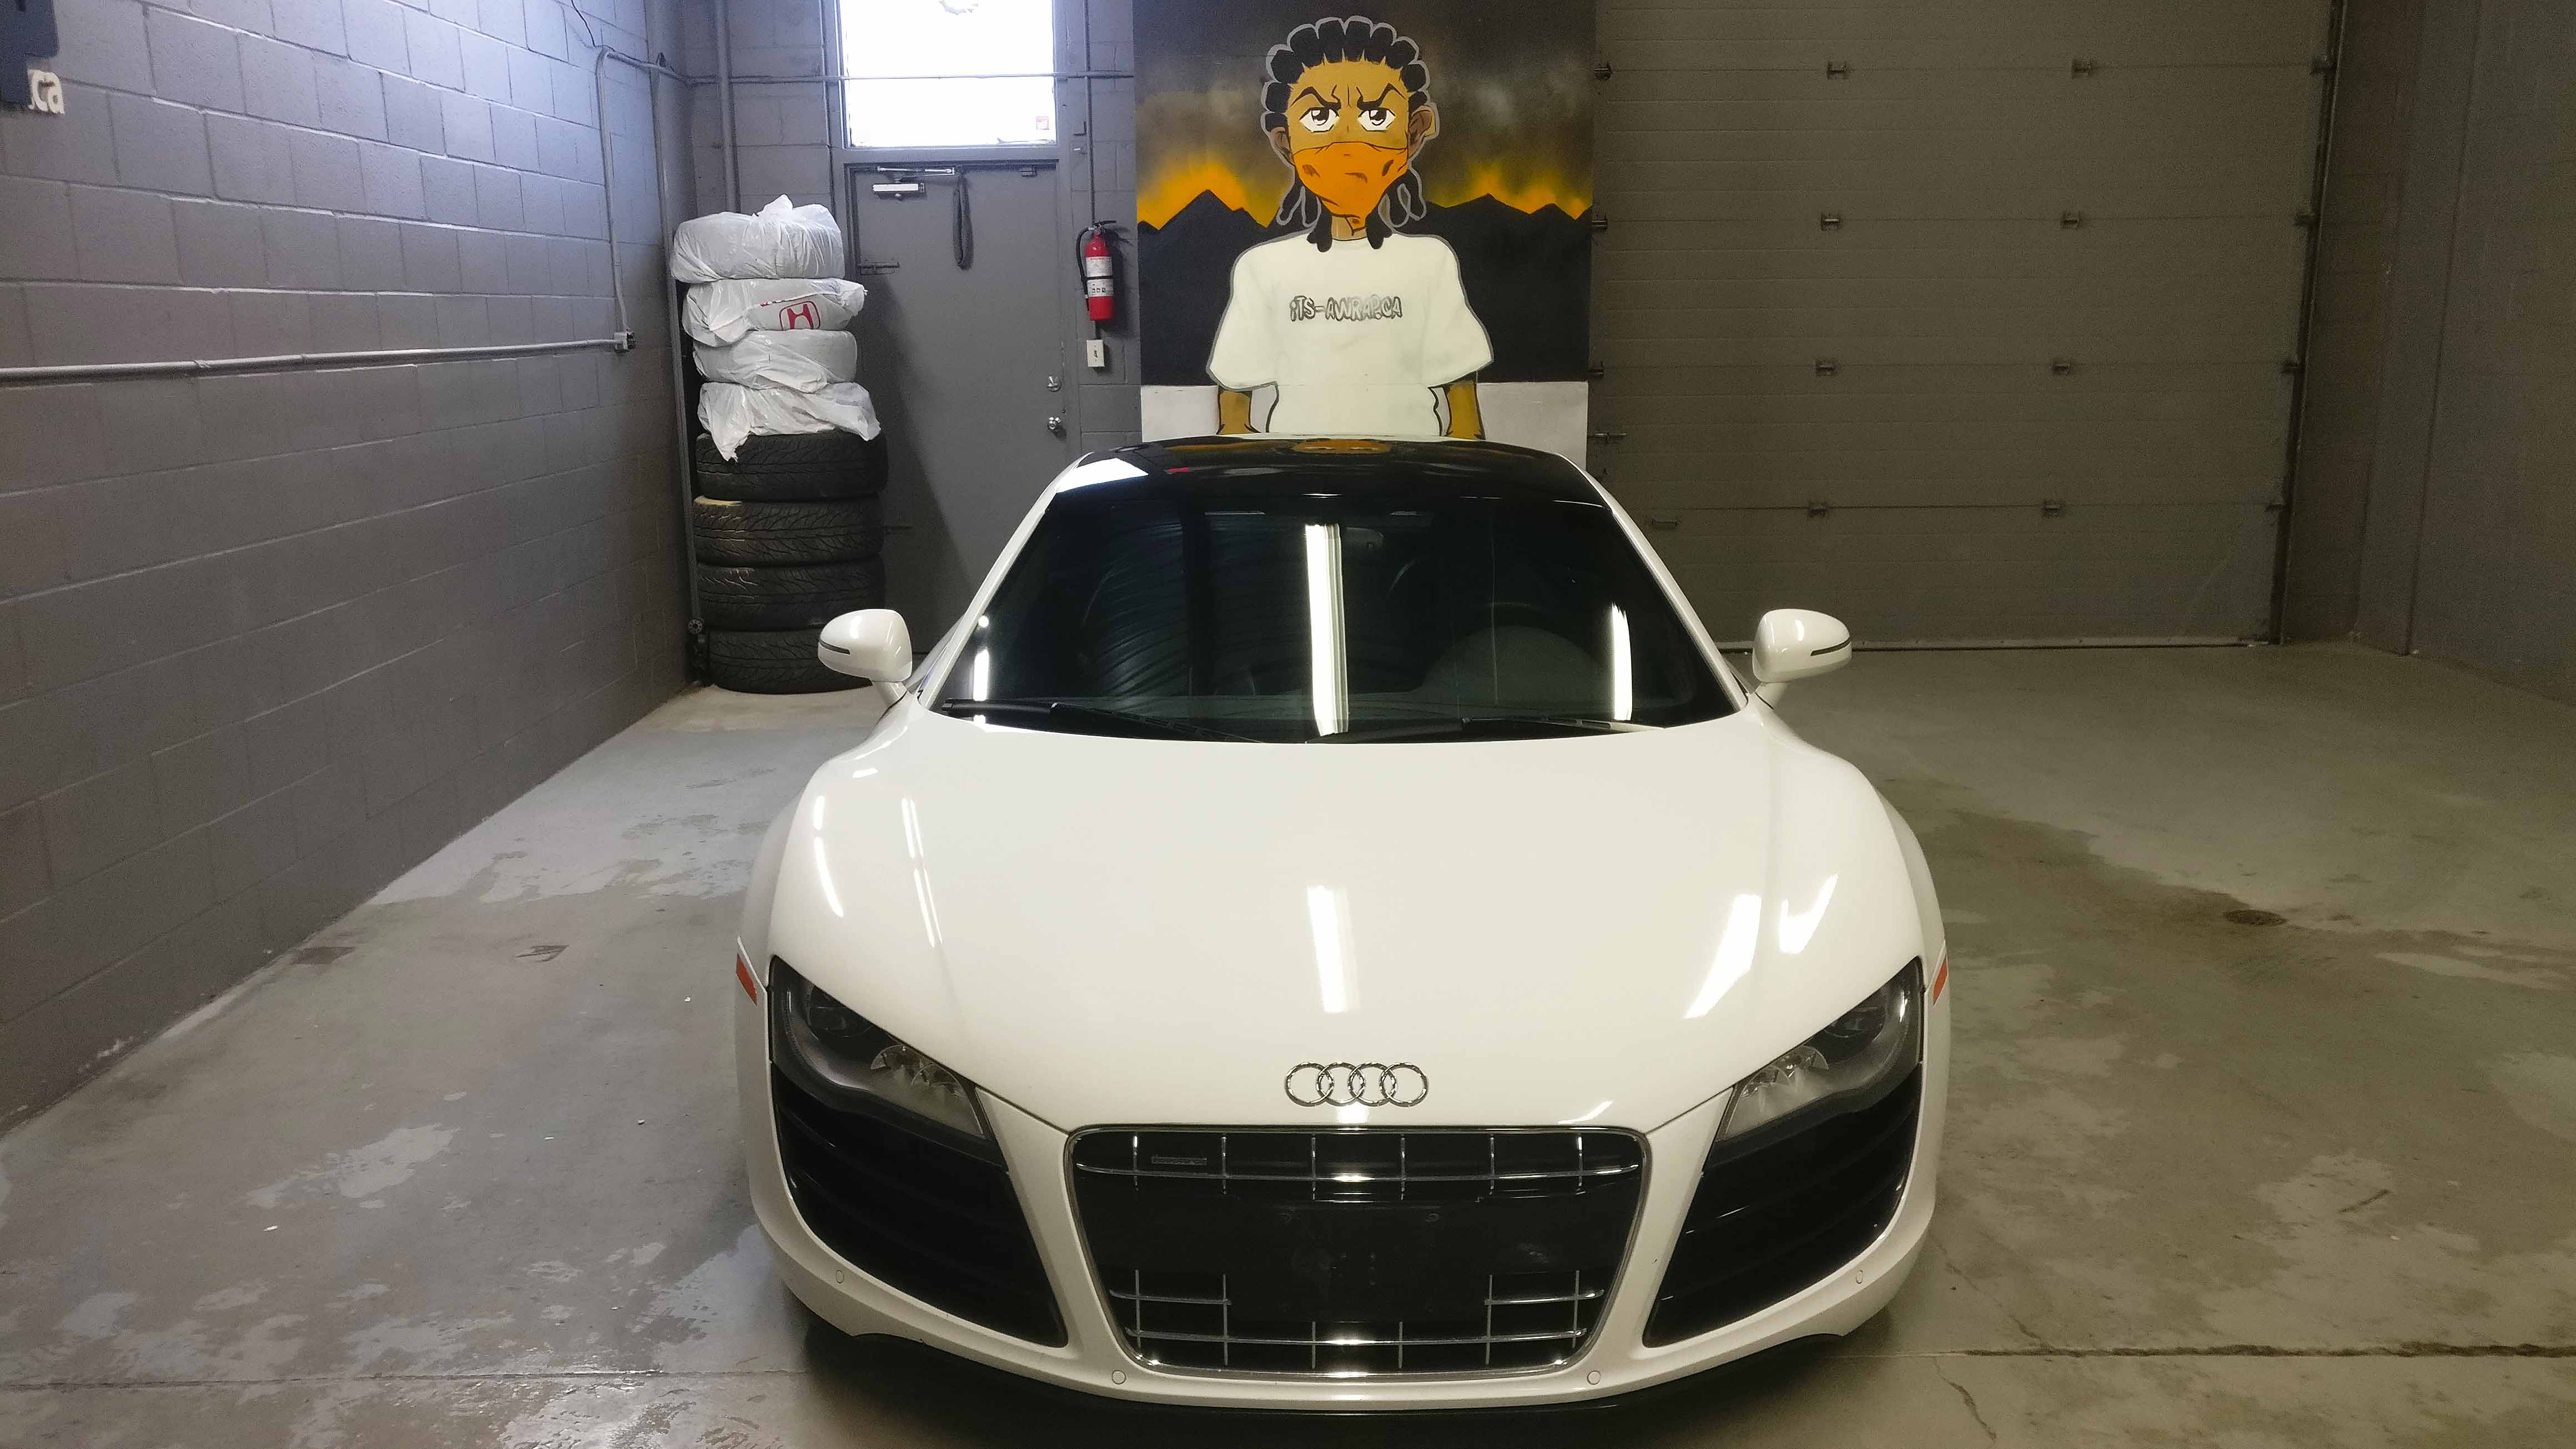 Audi R8 Roof wrap Avery gloss black